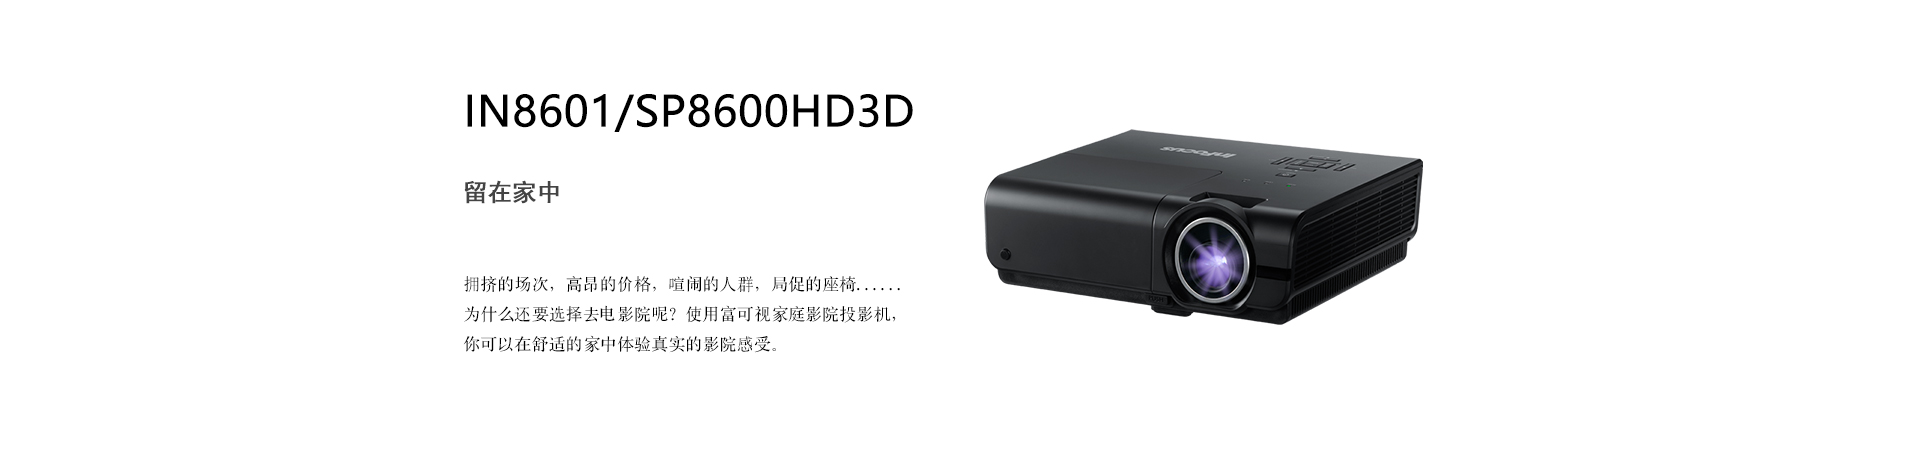 IN8601/SP8600HD3D